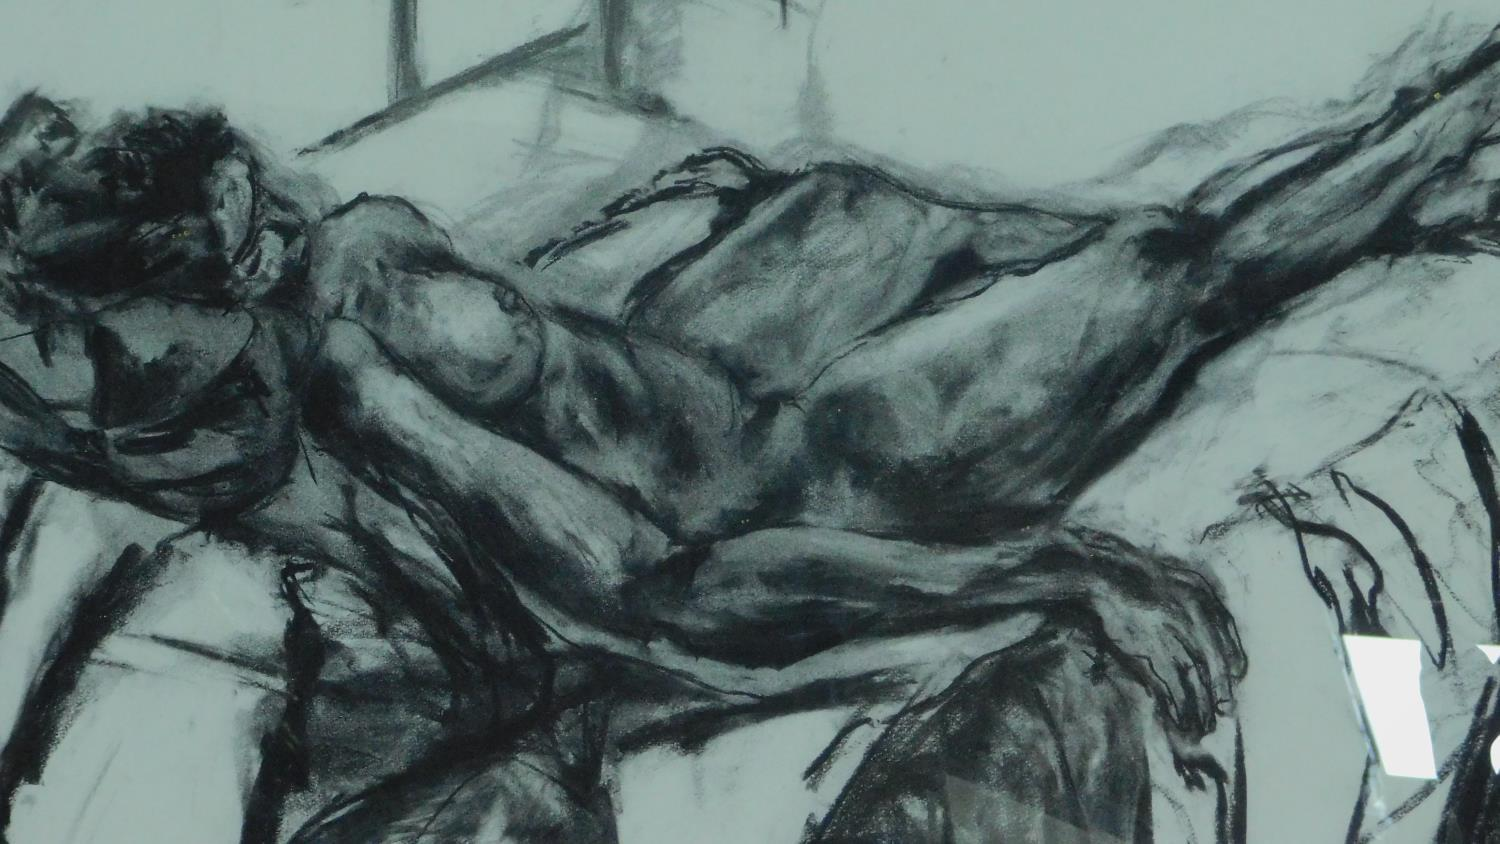 Two framed and glazed charcoal nude studies, monogrammed G H - 78x92 (largest) - Image 3 of 4